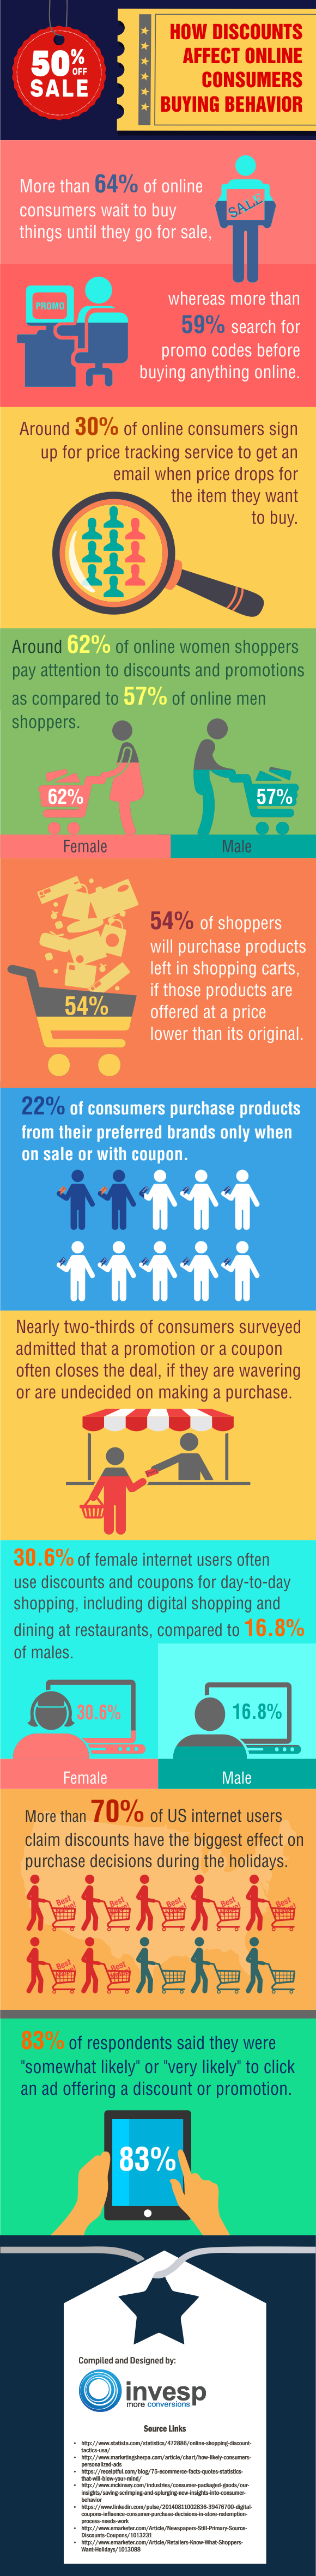 How discounts affect online consumer buying behavior